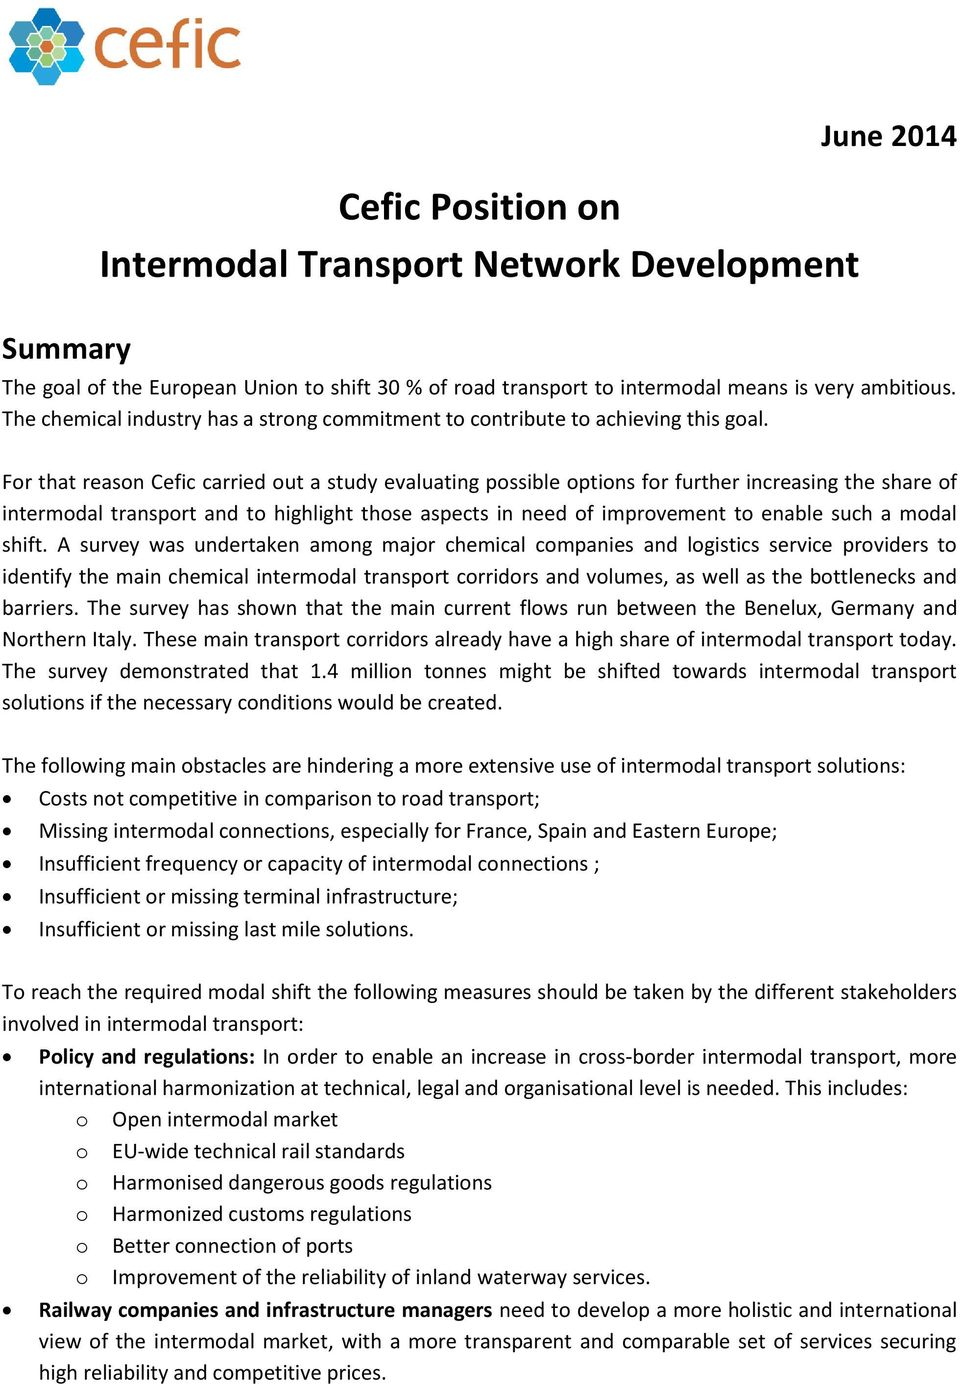 For that reason Cefic carried out a study evaluating possible options for further increasing the share of intermodal transport and to highlight those aspects in need of improvement to enable such a